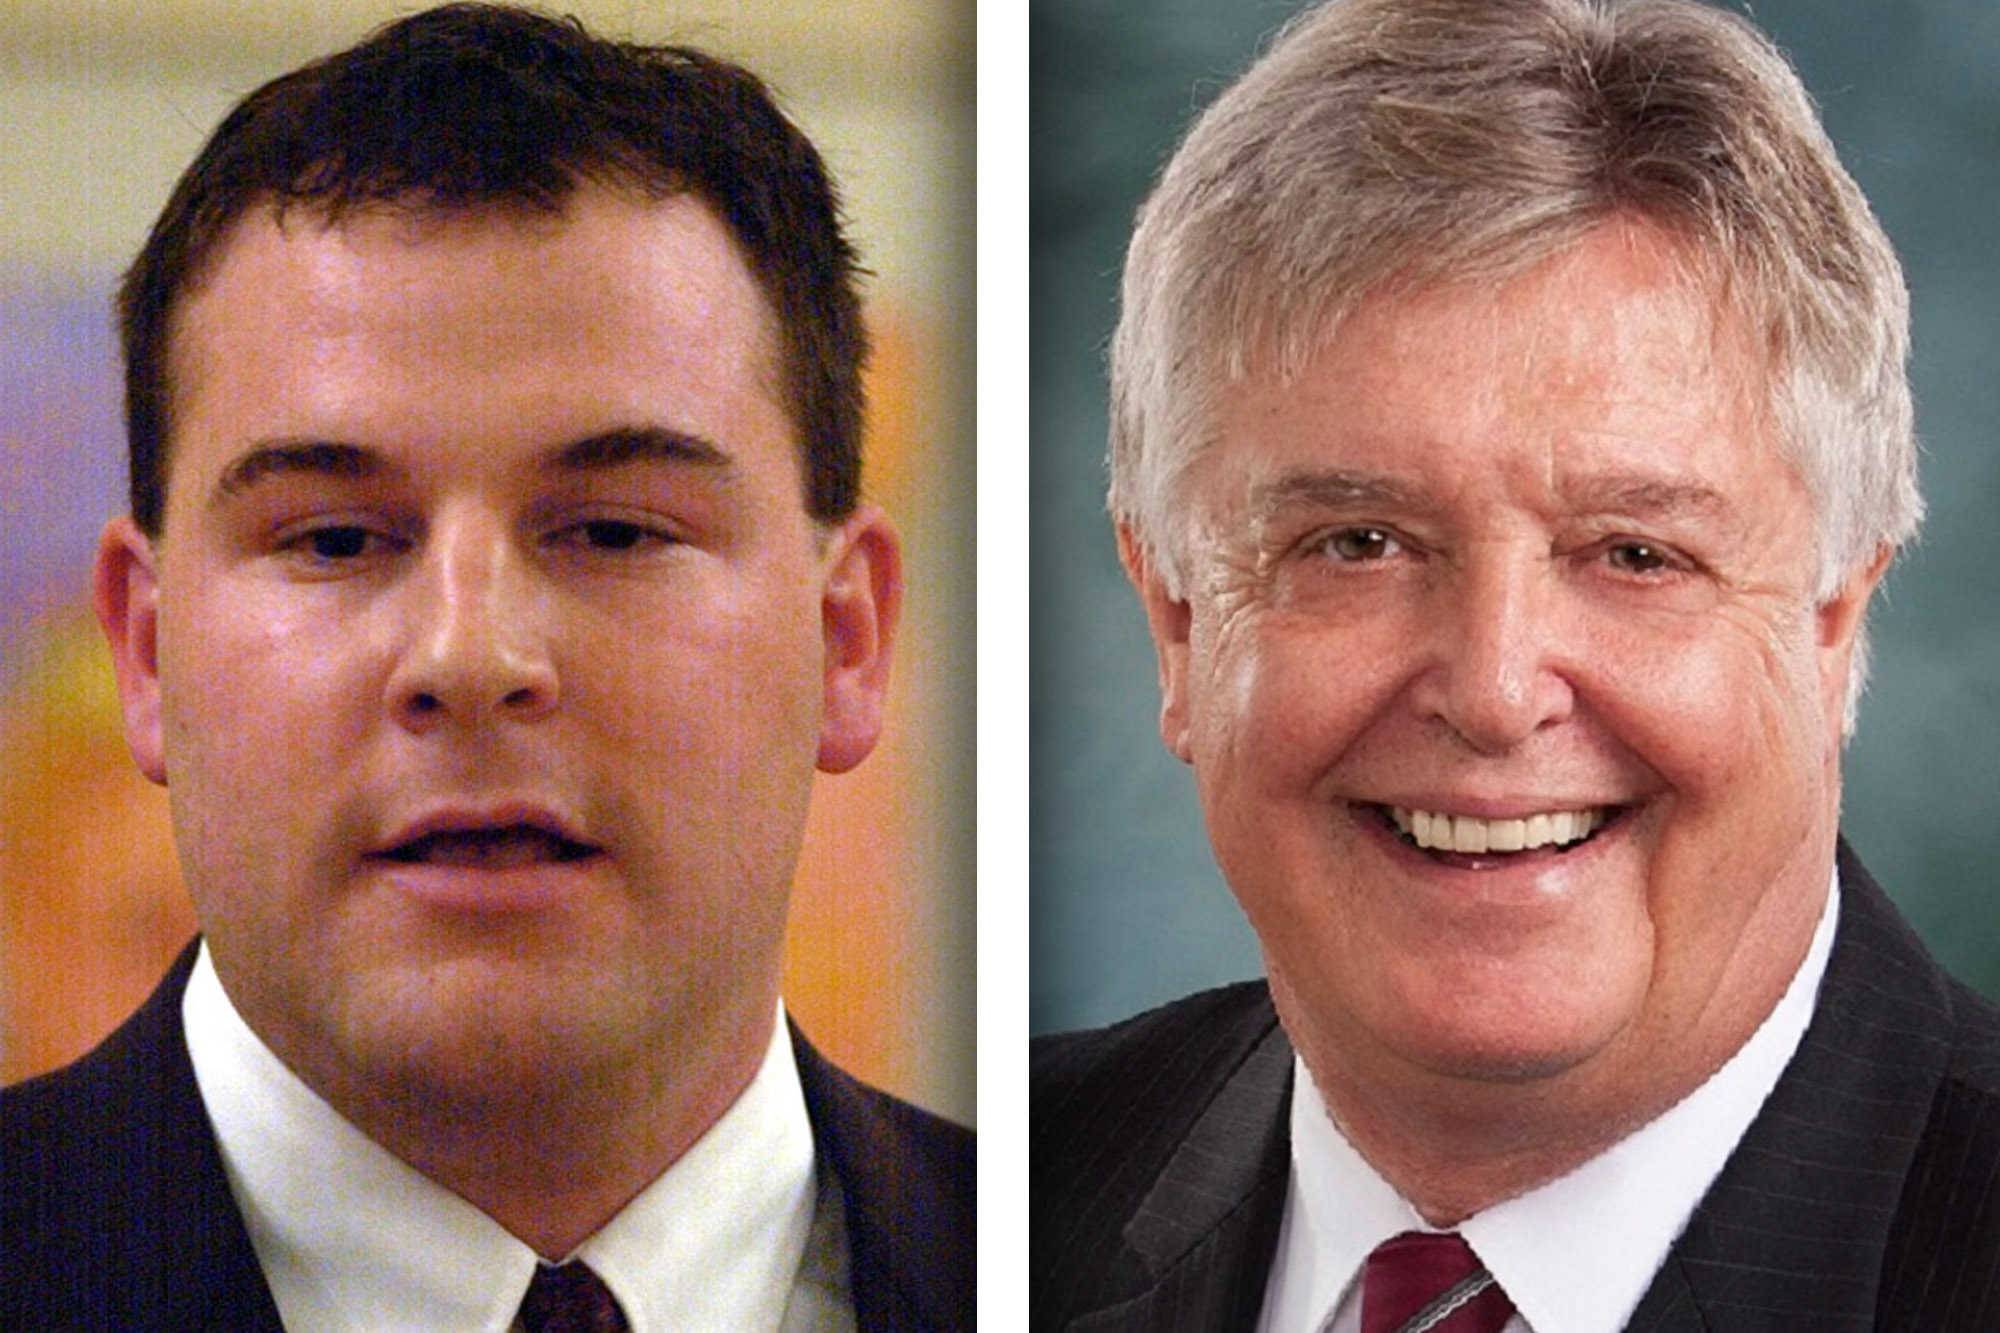 Democrat John Bartman, left, and Republican Steven Reick are candidates for the 63rd House District.